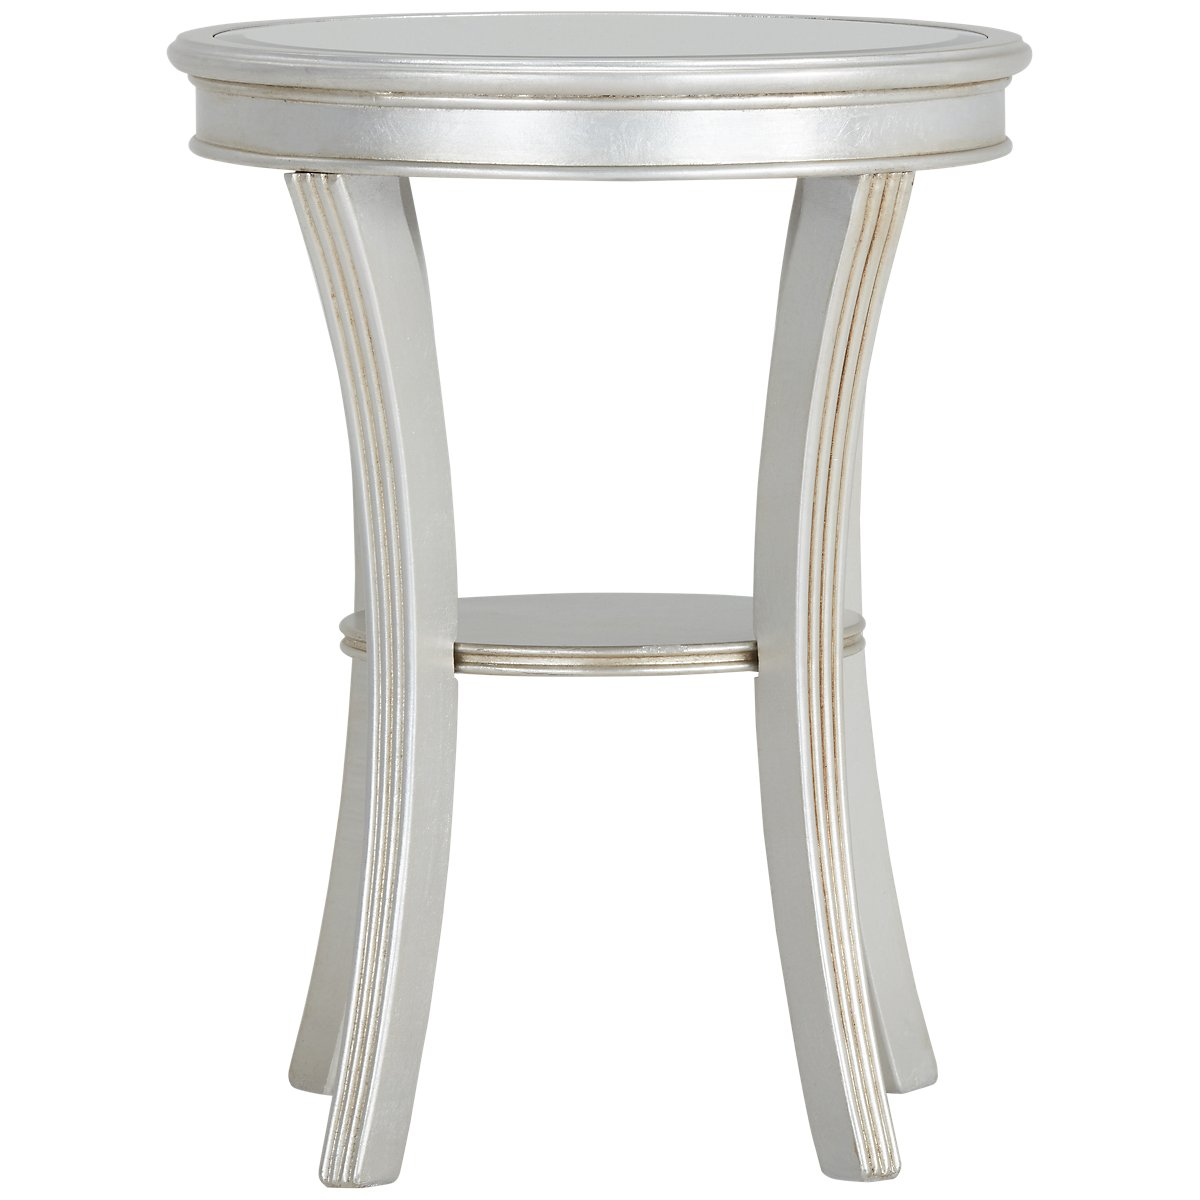 zadie silver accent table pedestal wicker coffee vanity modern black end outdoor nic small chrome lacquer nate berkus bath rug gold frame foyer ideas lucite acrylic side clearance